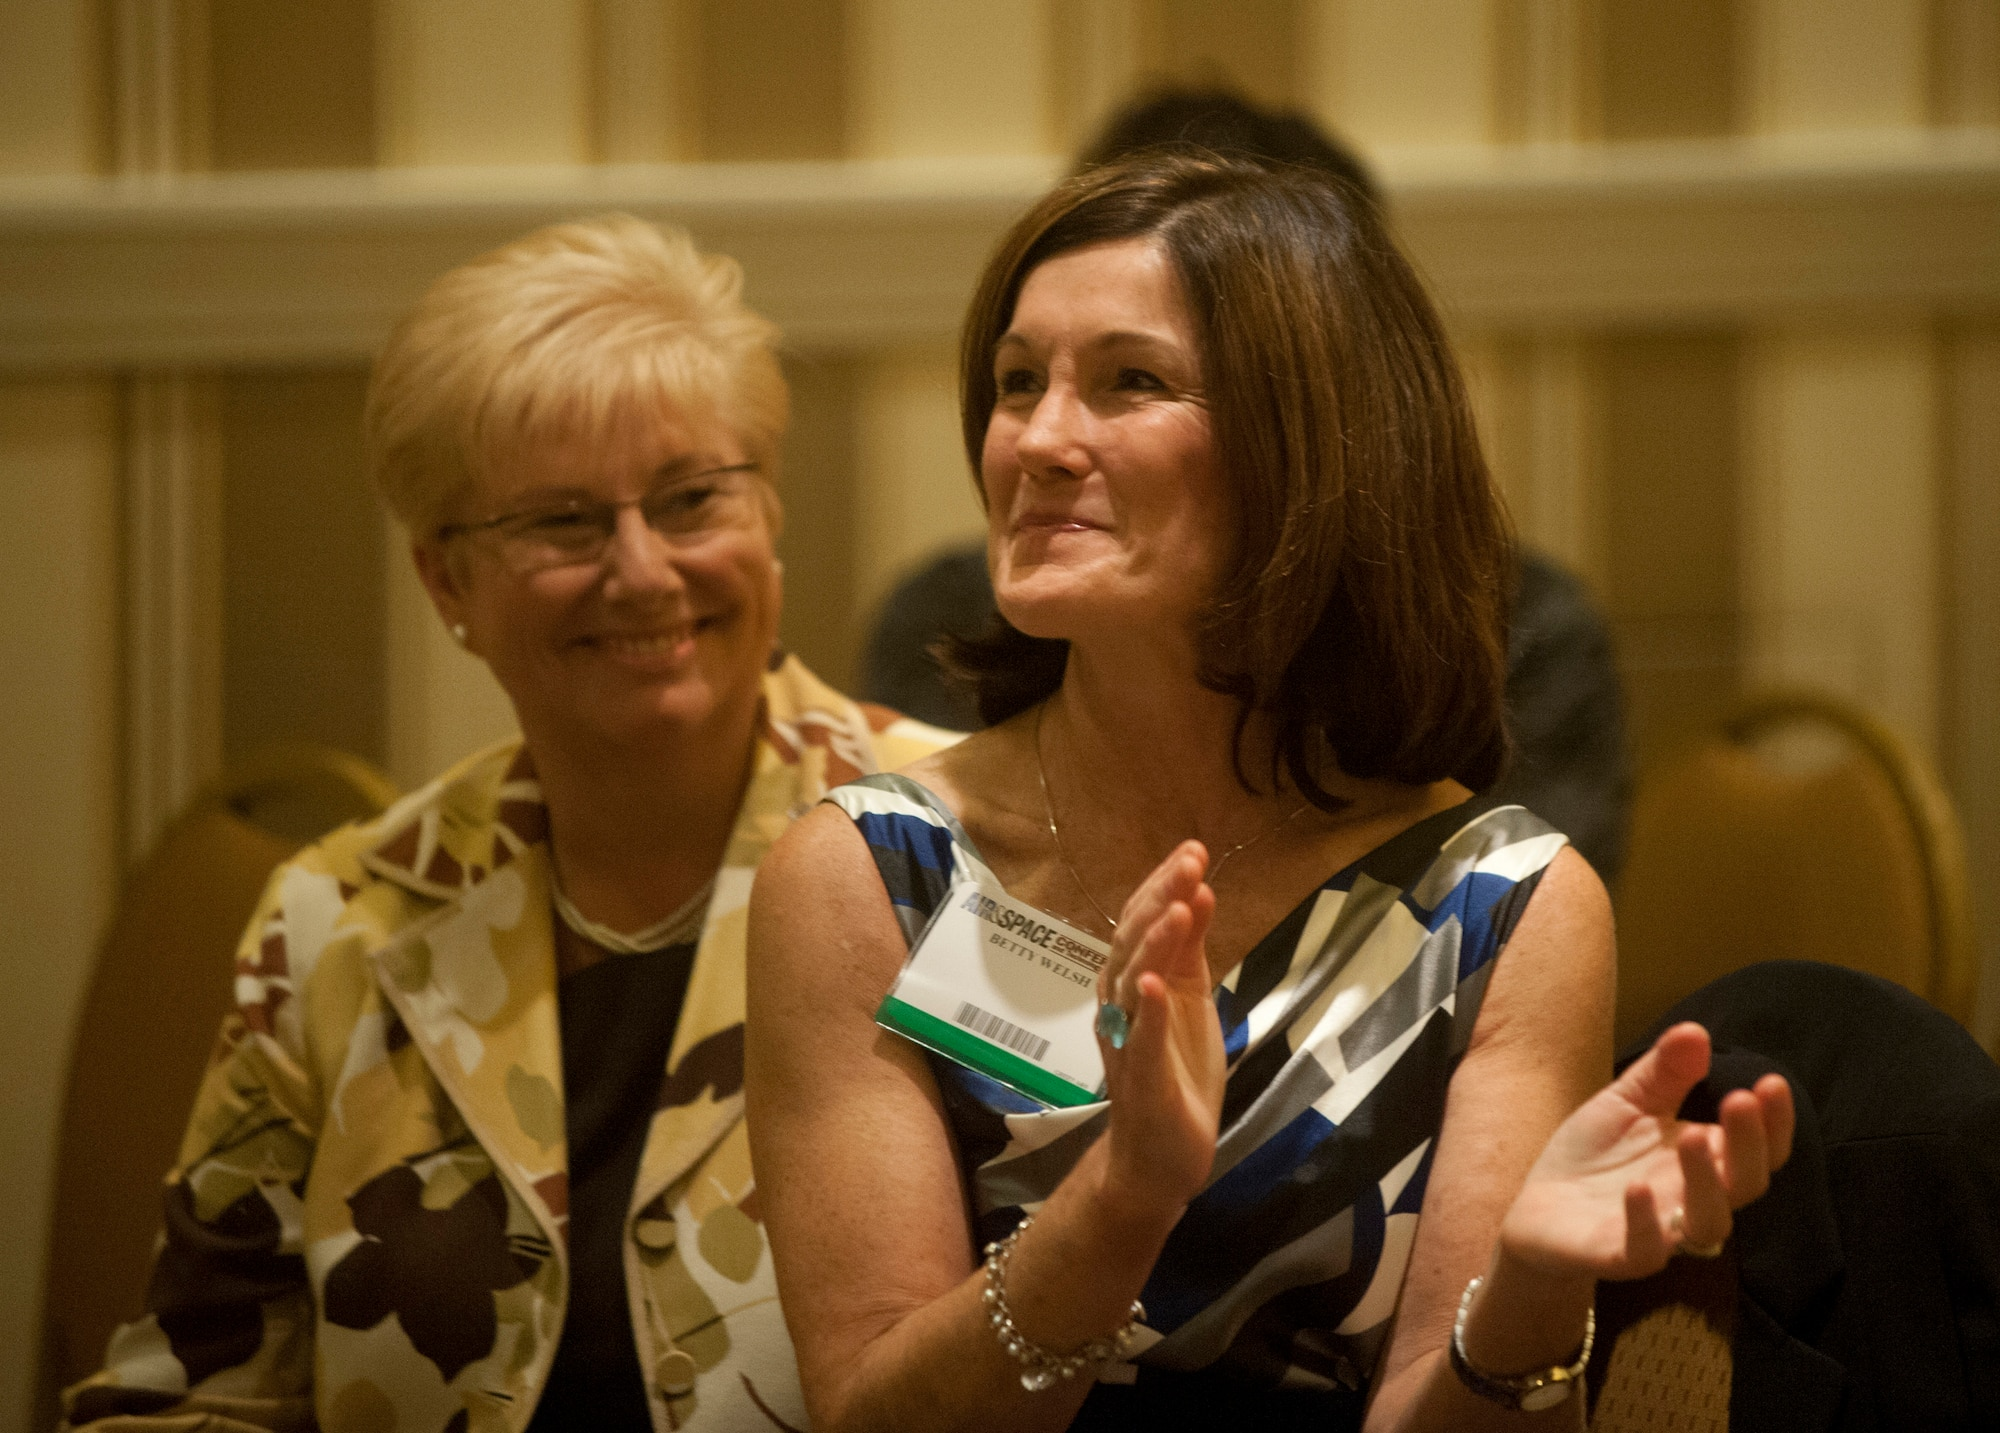 Betty Welsh, wife of Air Force Chief of Staff Gen. Mark A. Welsh III, applauds as she listens to a speaker during the Air Force Association Family Forum in Washington, D.C., Sept. 17, 2012. Beside her is Paula Roy, the wife of Chief Master Sgt. of the Air Force James Roy. (U.S. Air Force photo/Val Gempis)